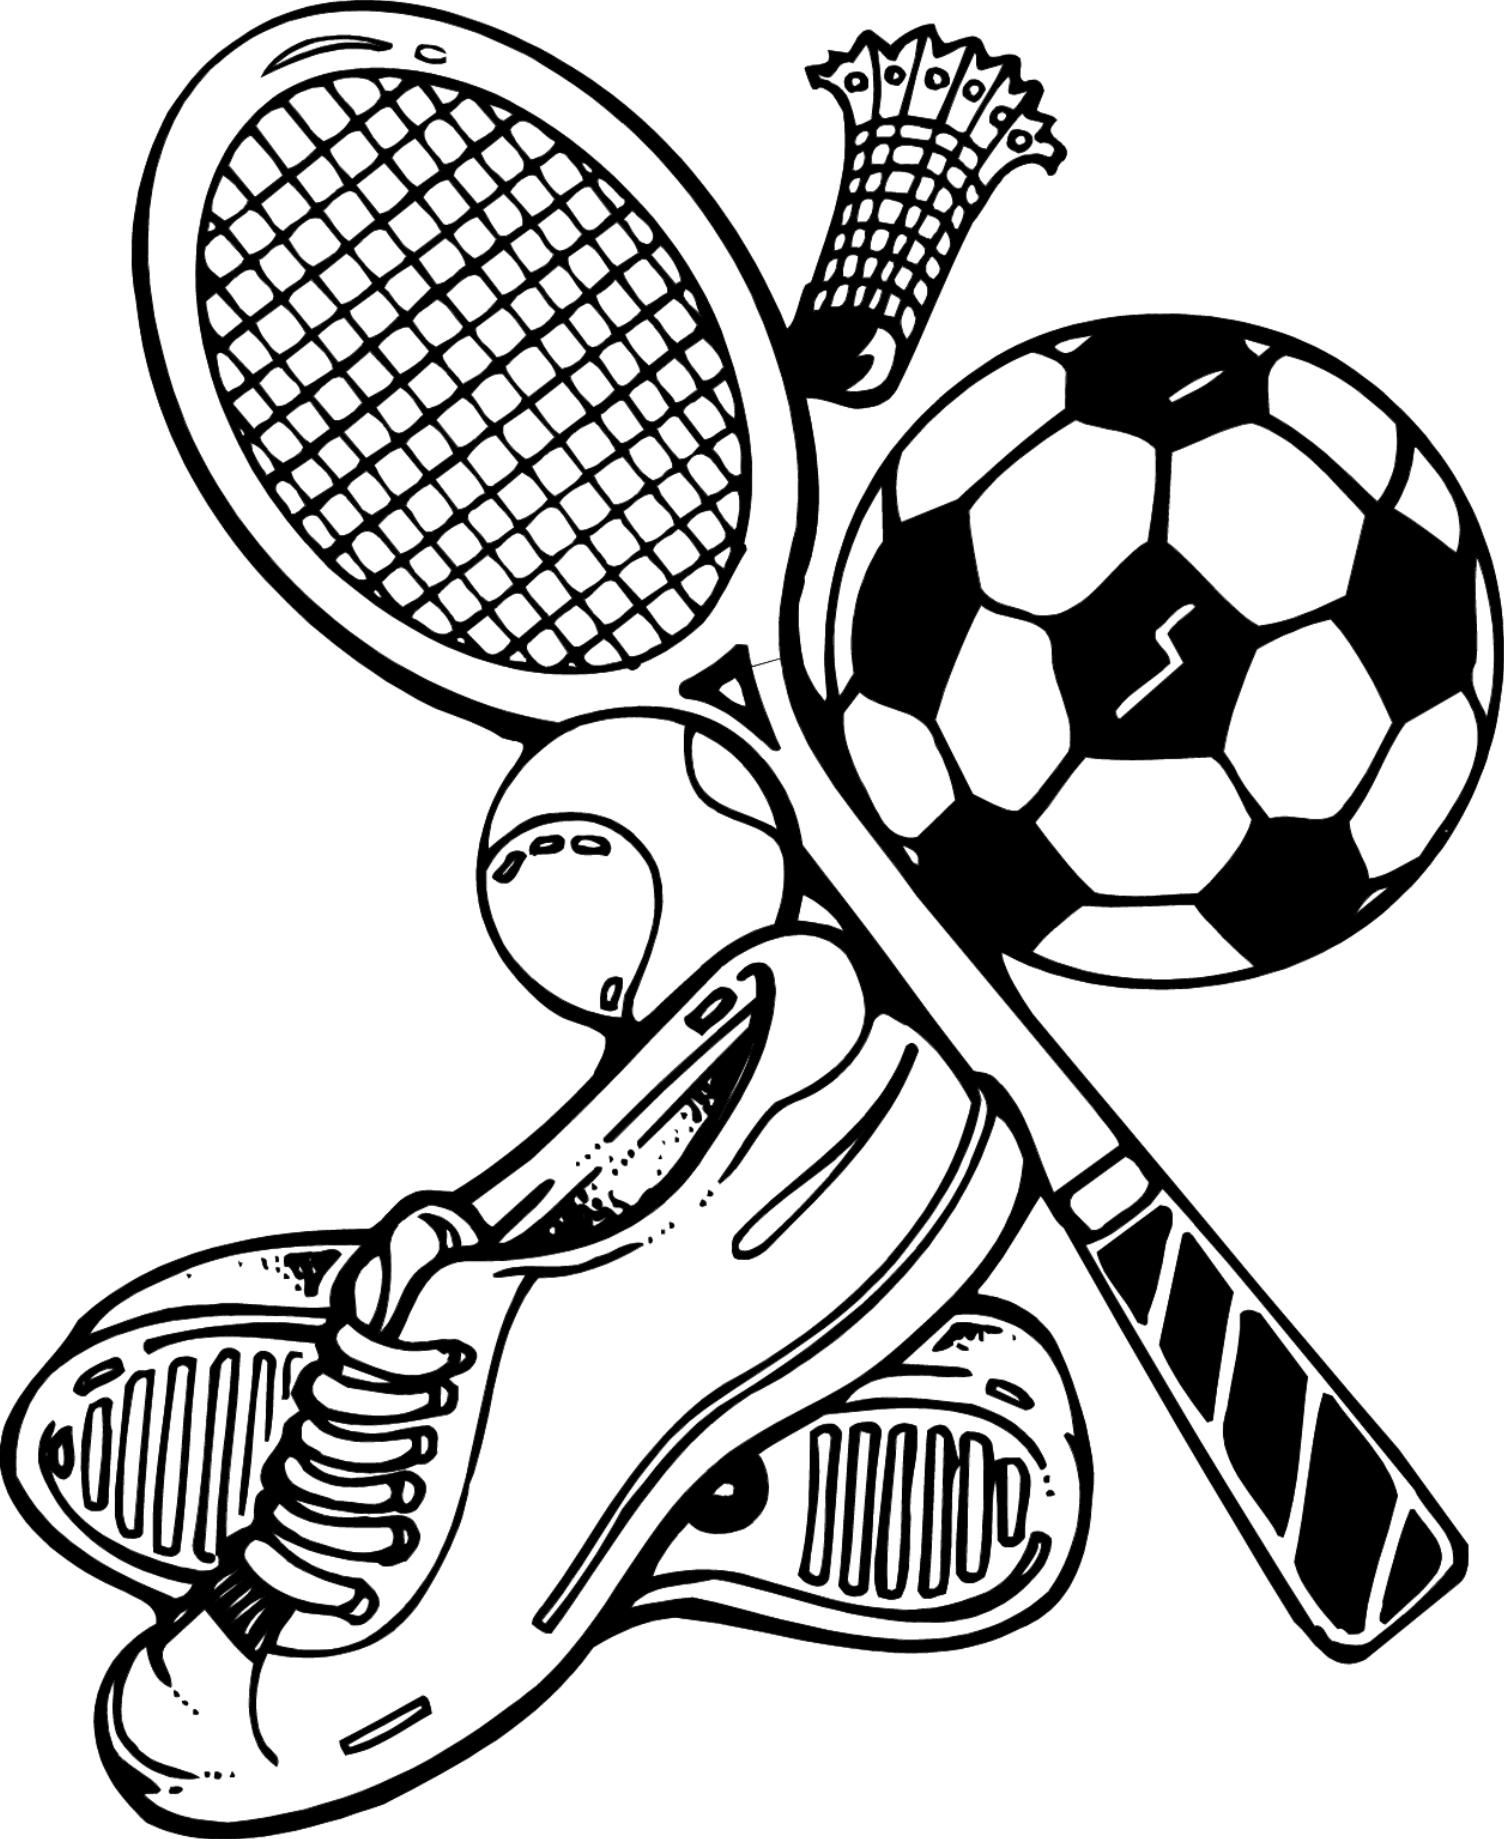 cool kids sports coloring pages Free Download | Celebrities ...